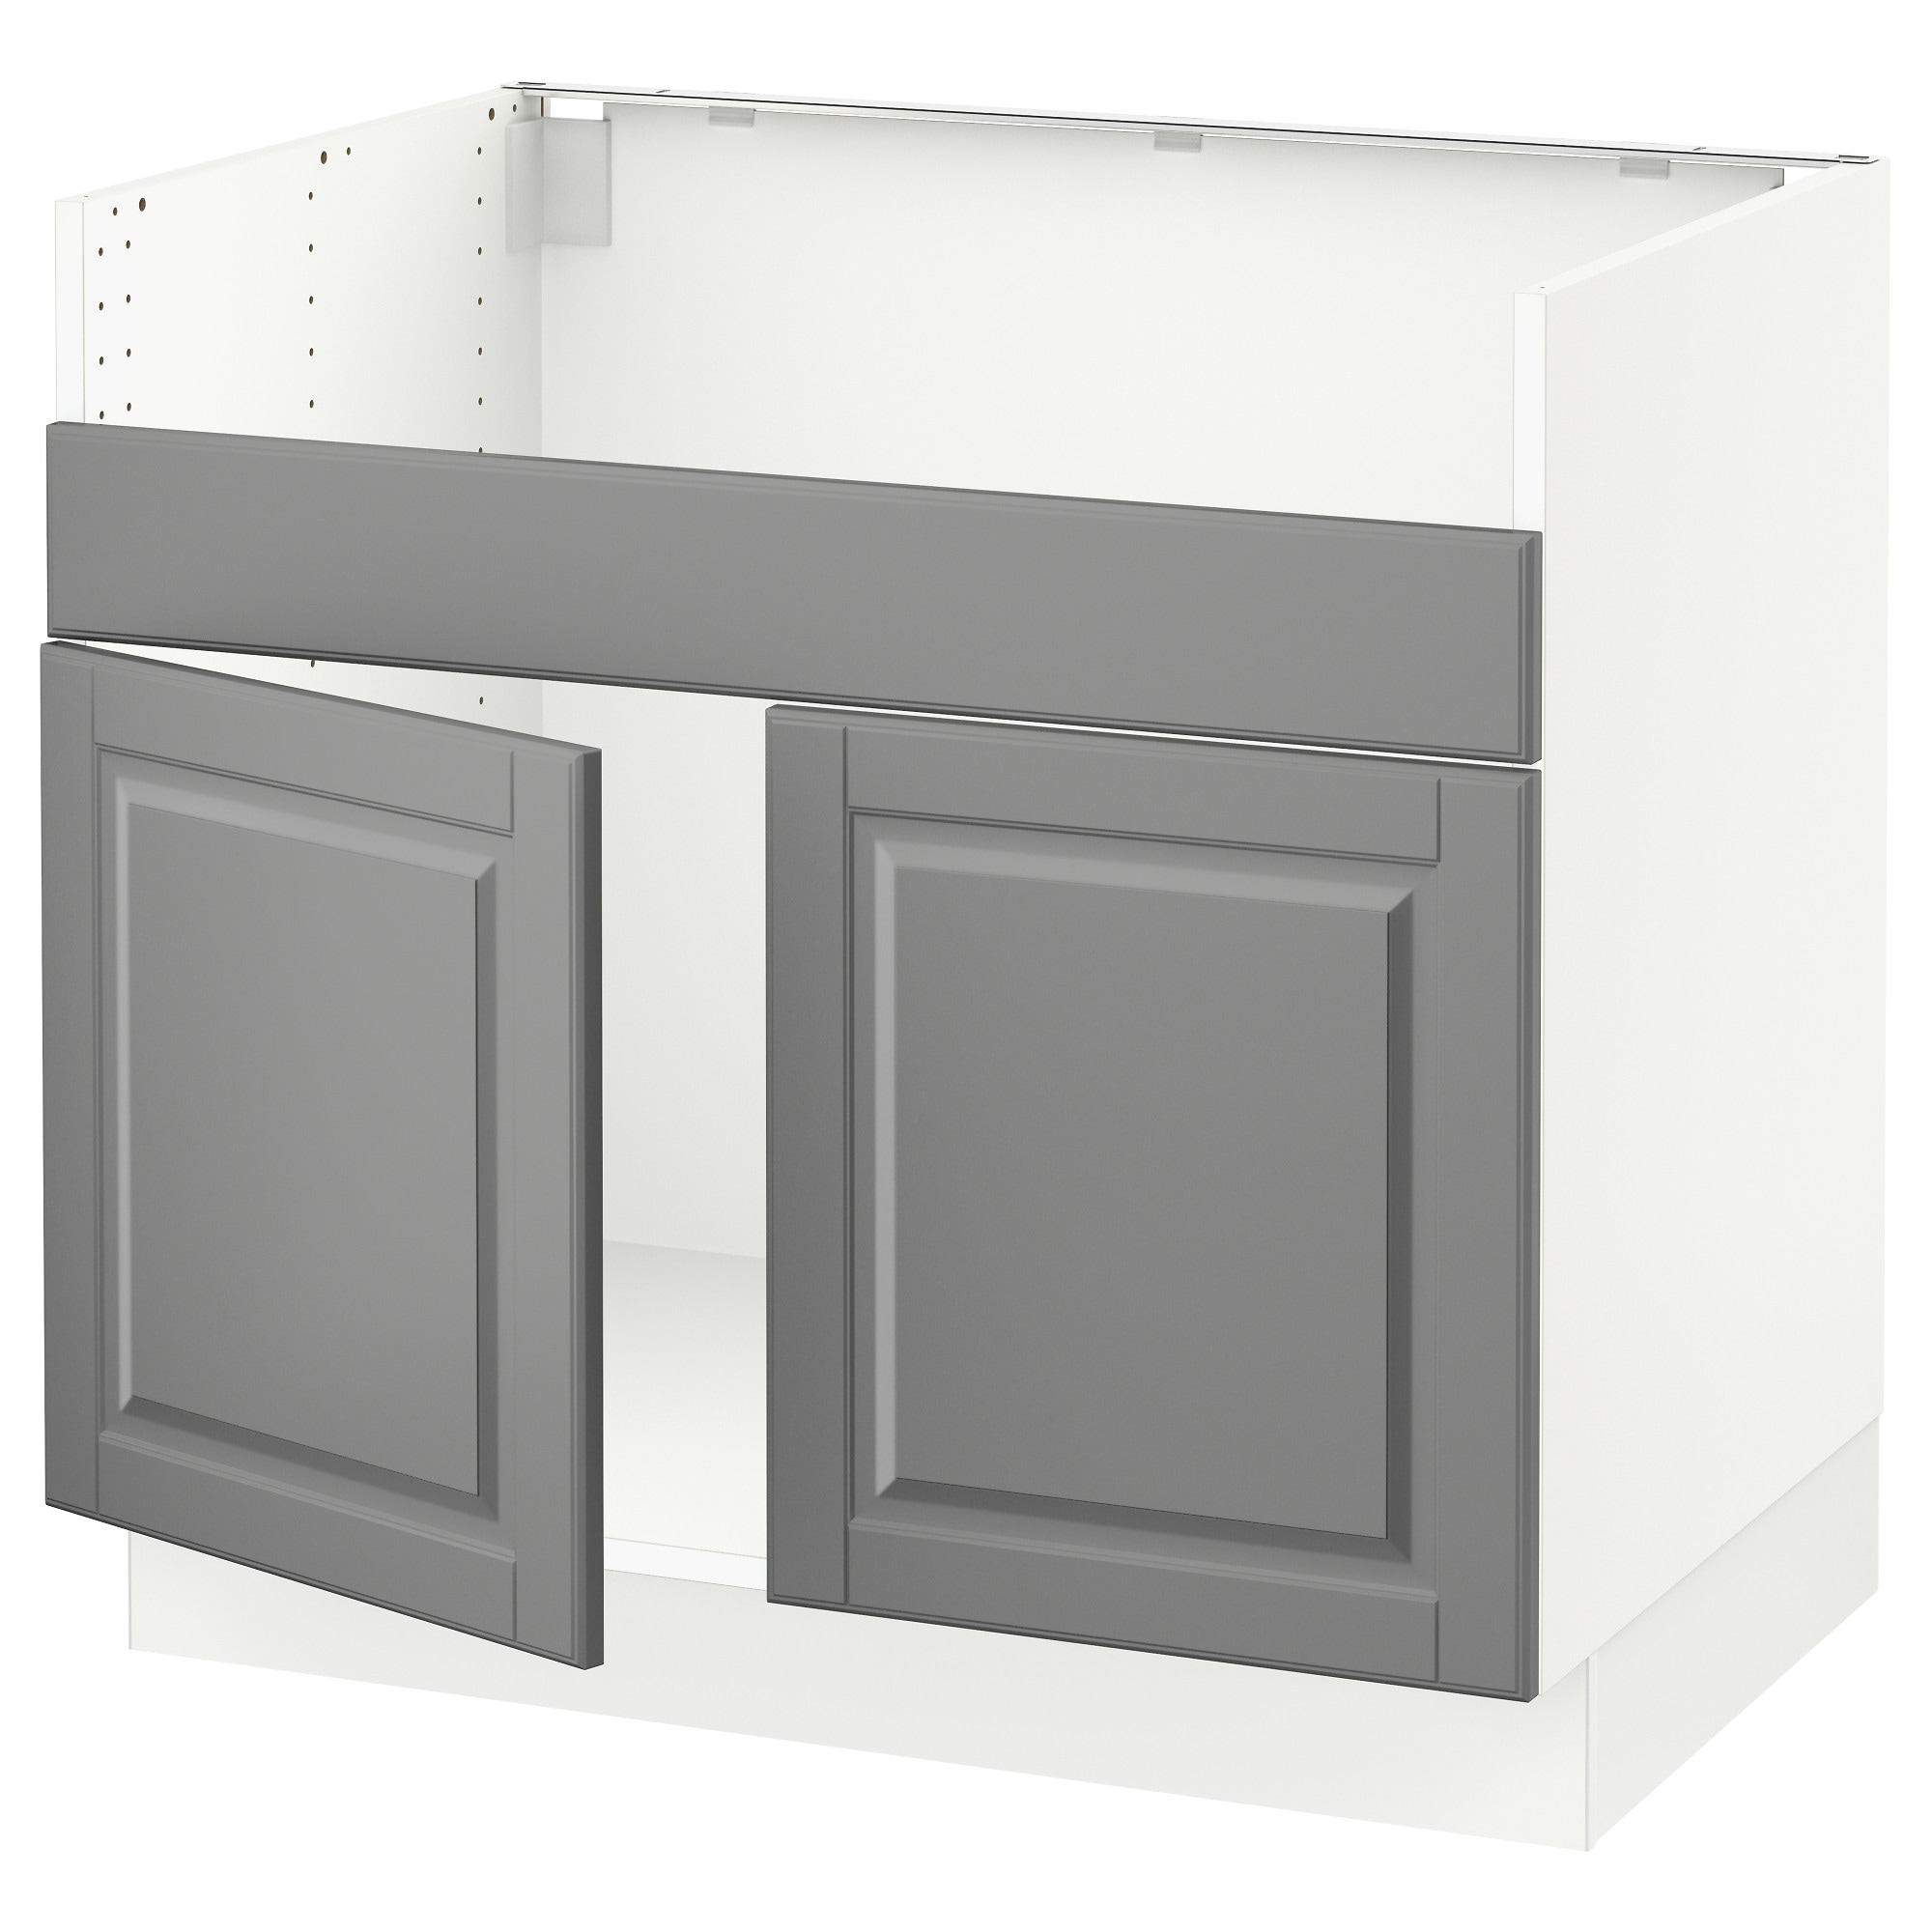 ikea kitchen cabinets price list ikea kitchen cabinets prices rickevans homes